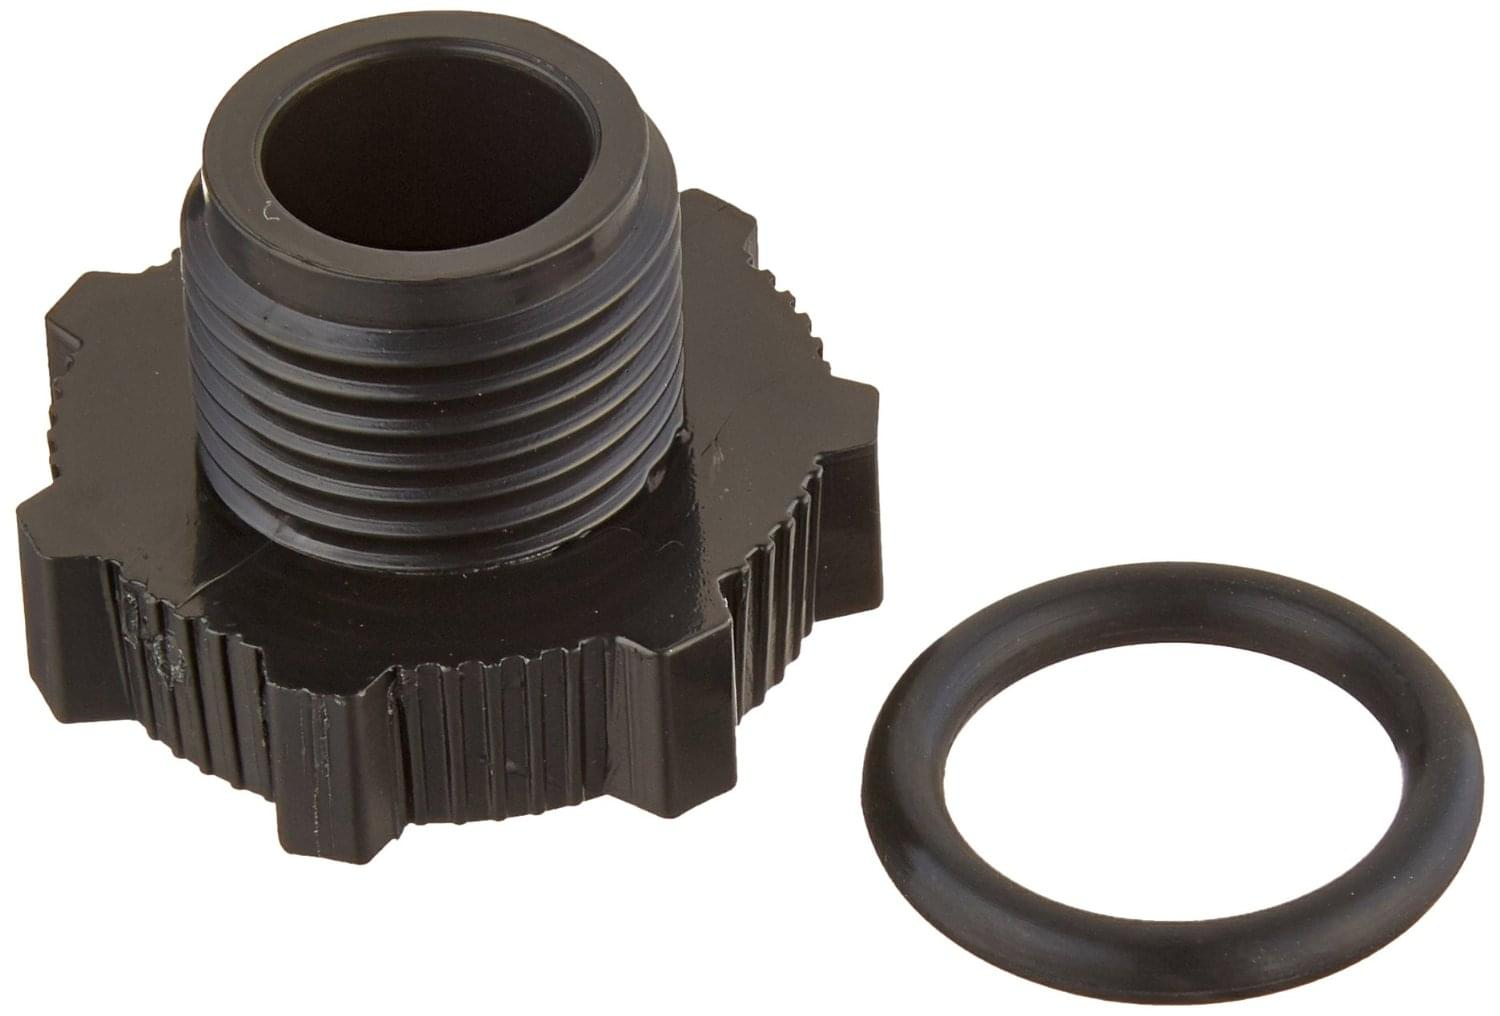 Hayward - CX250Z14A - Drain Plug Kit Replacement for Hayward Star-Clear  Cartridge Filter and Chlorine and Bromine Feeders